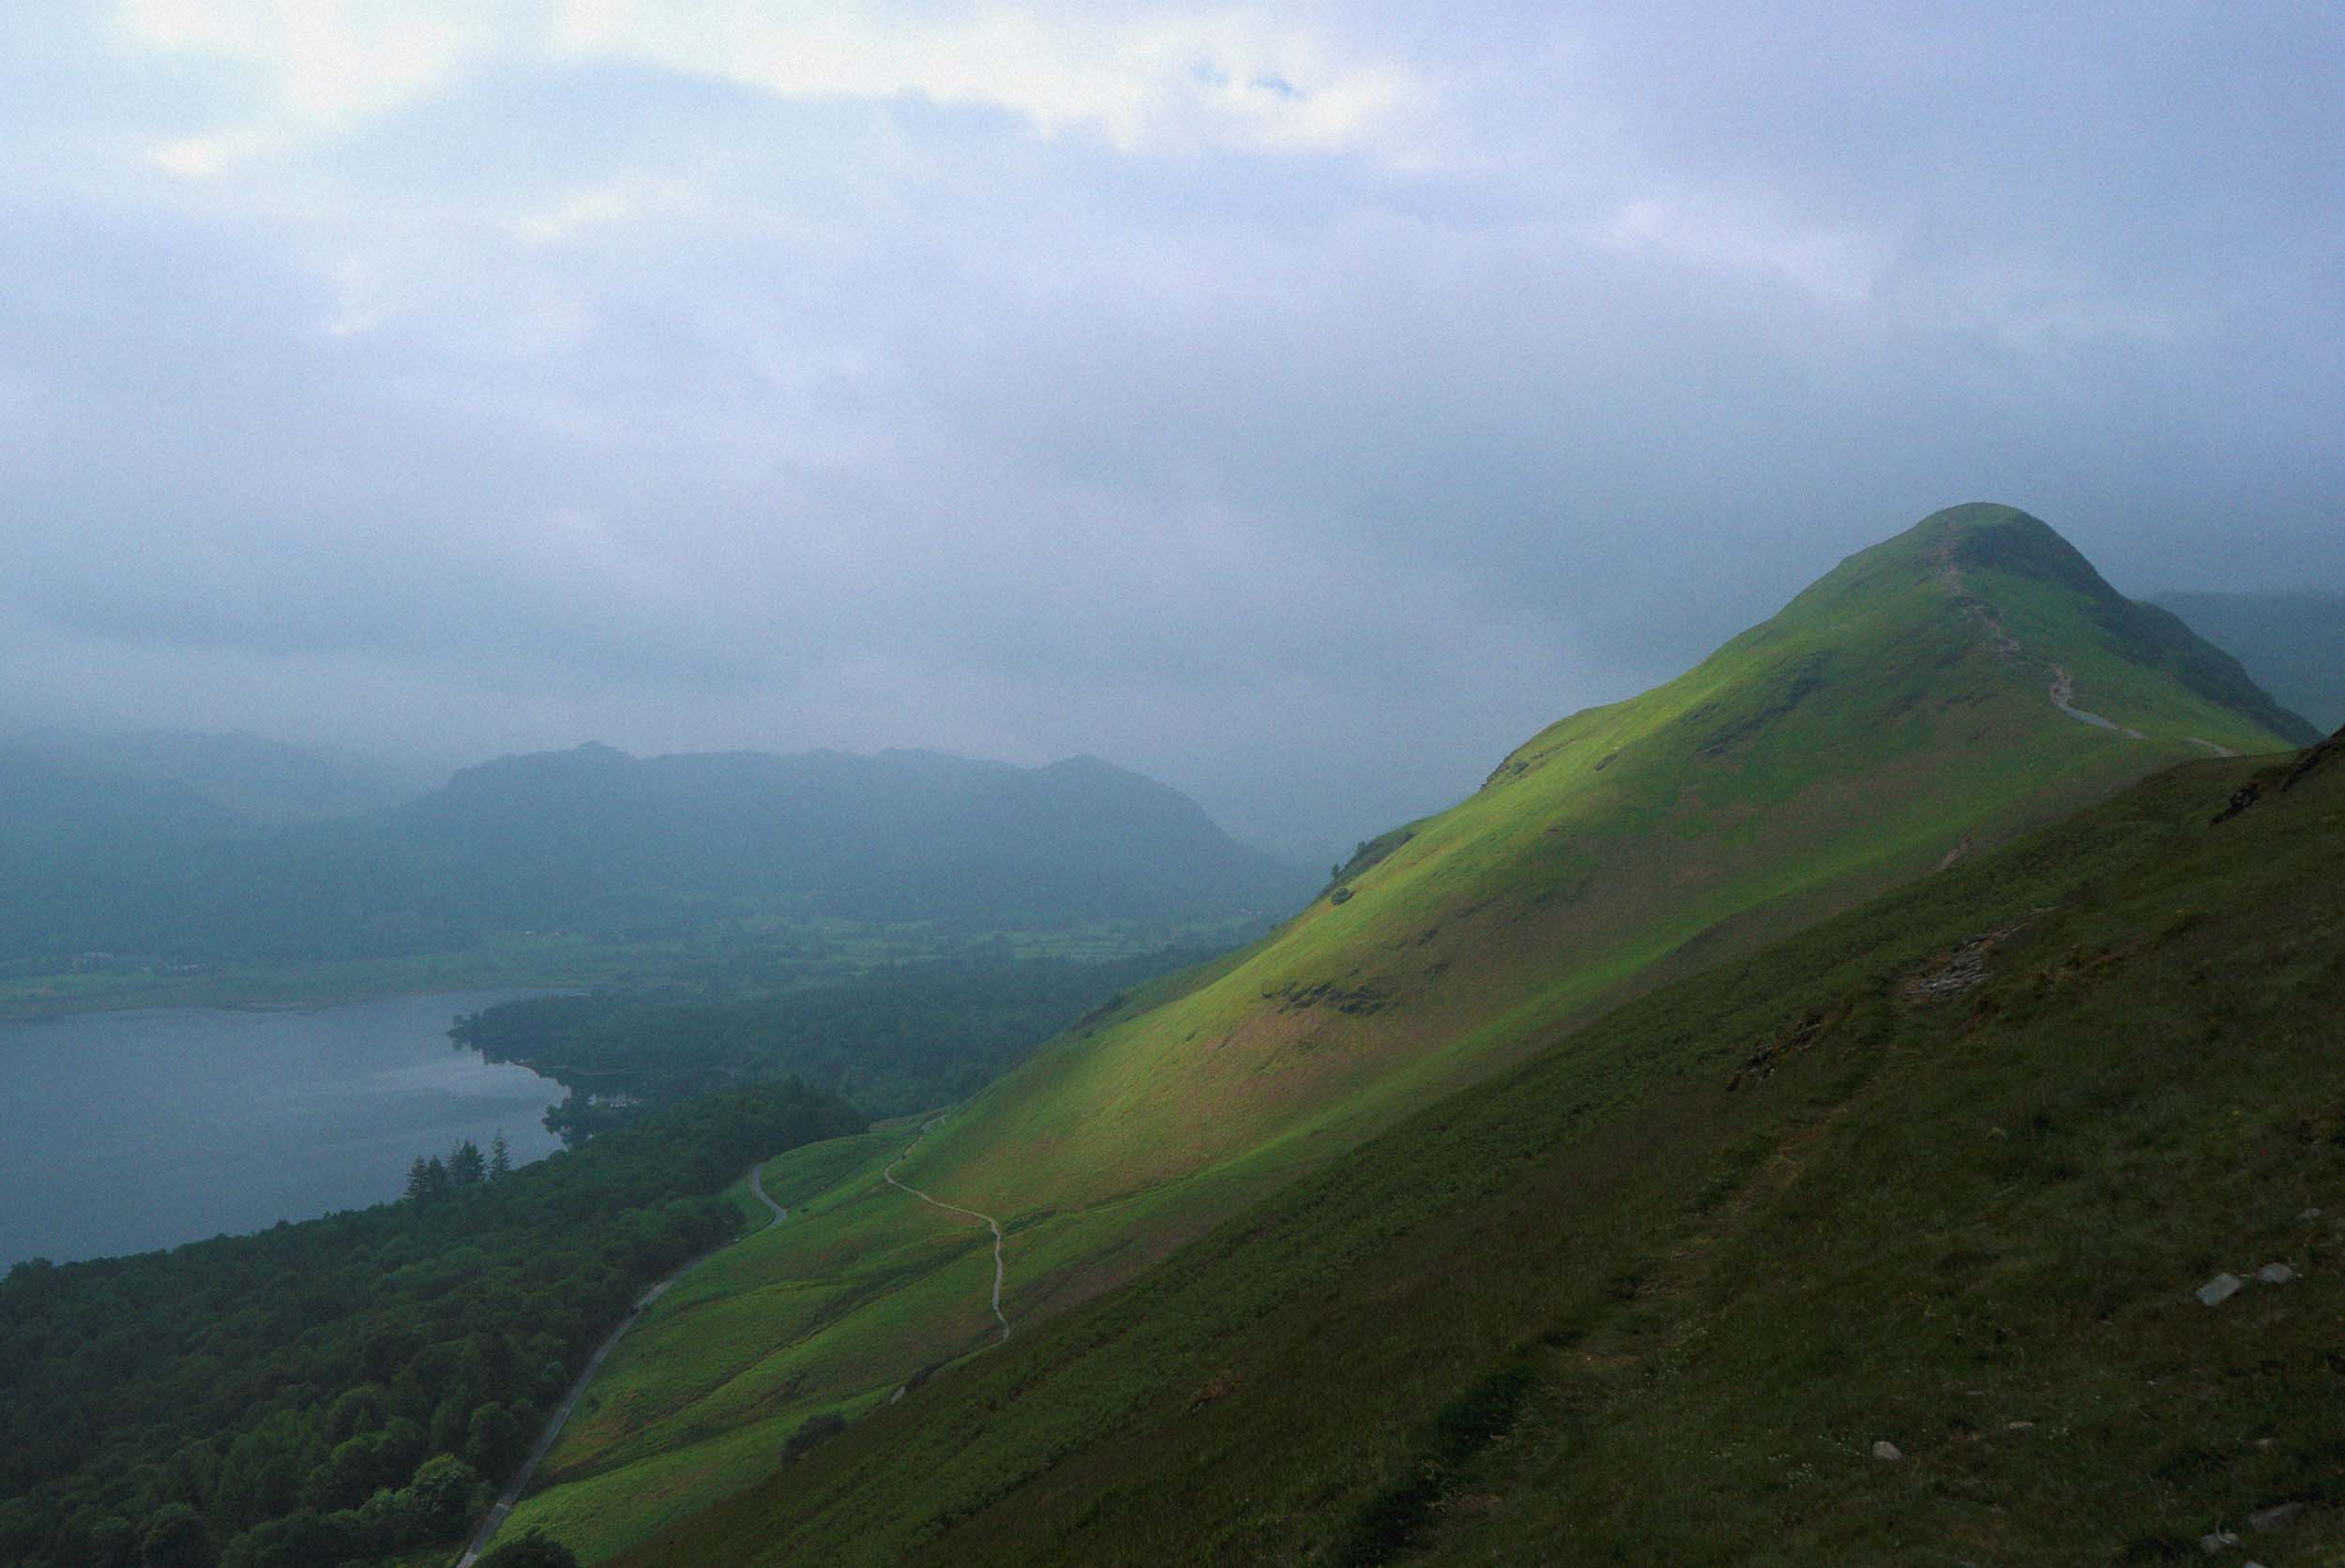 If you get a chance to trek up Cat Bells by Derwent Water on a clear day then you won't be disappointed by the views!